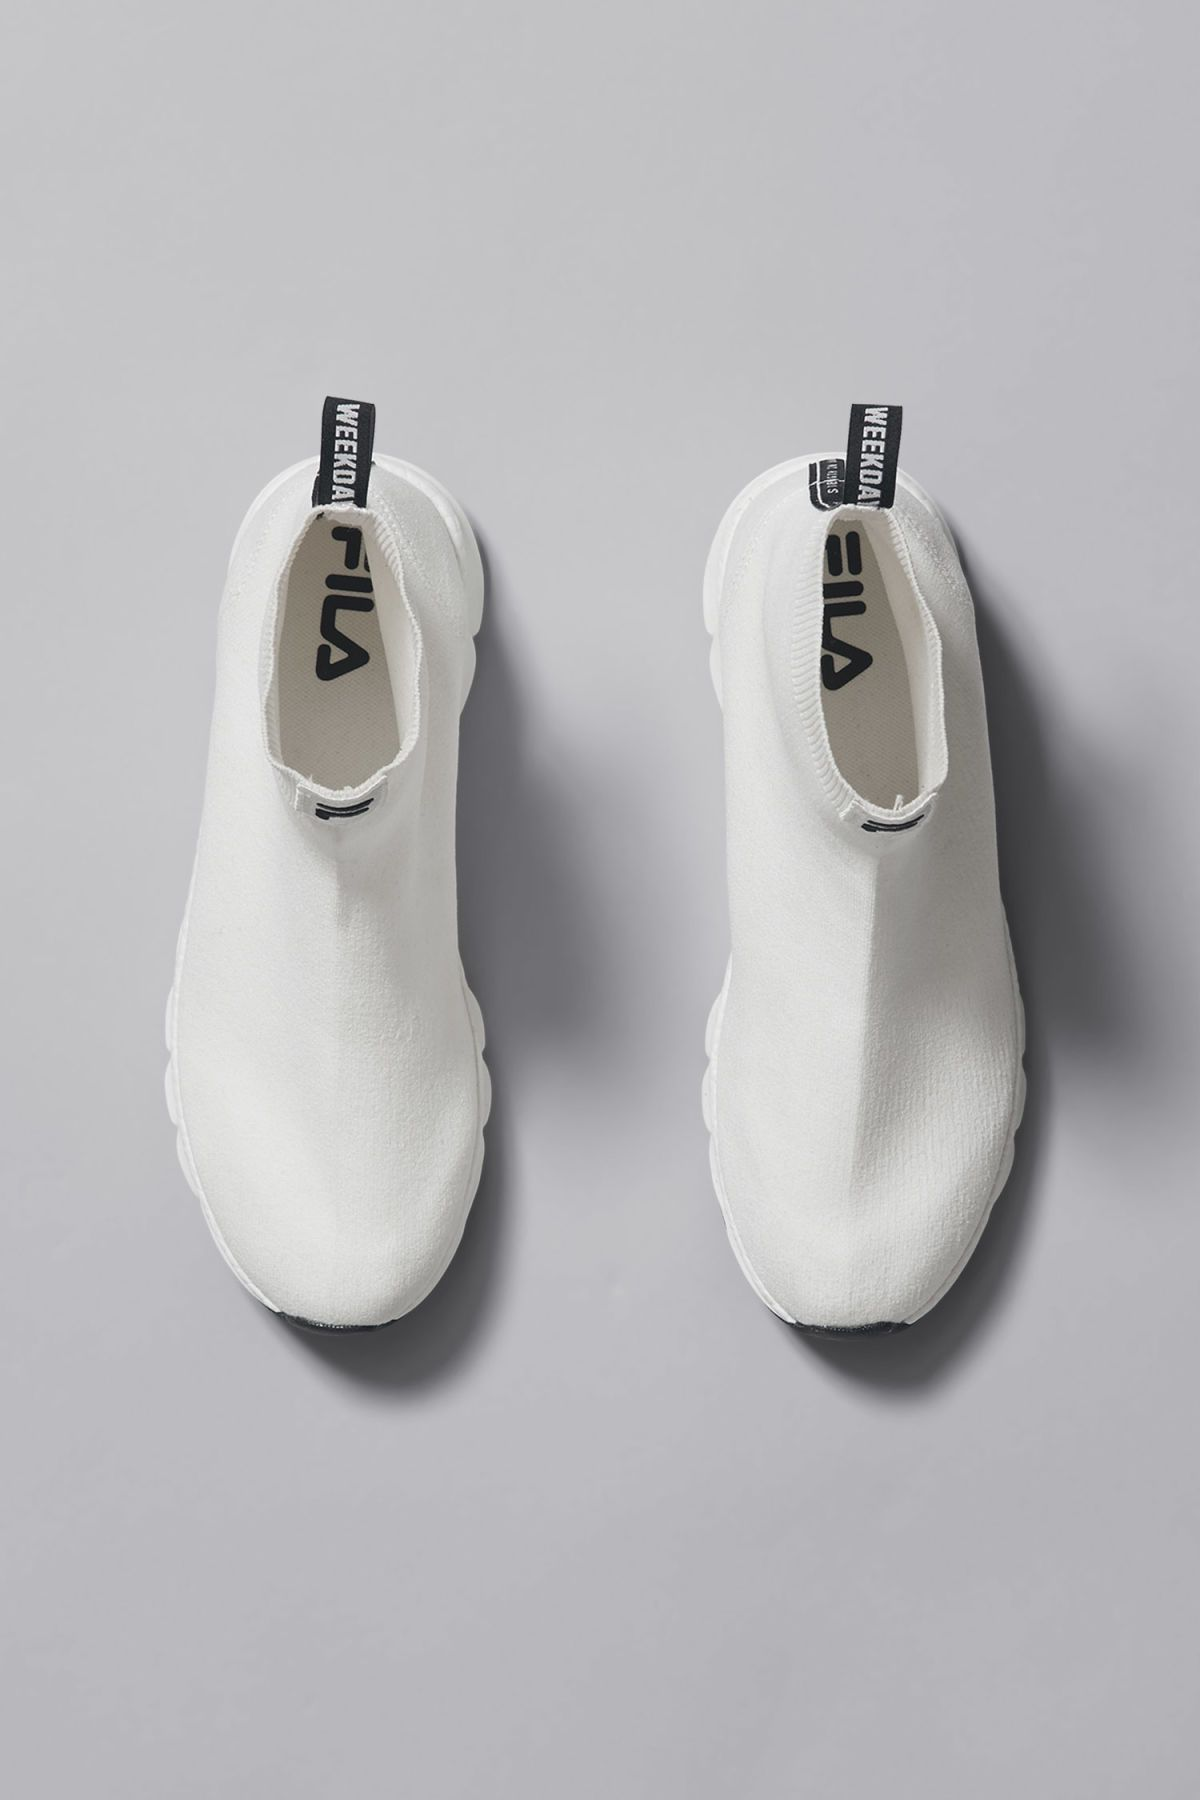 White Sock 2019 Weekday Florence In Shoes FrSlippers hCsrQtd